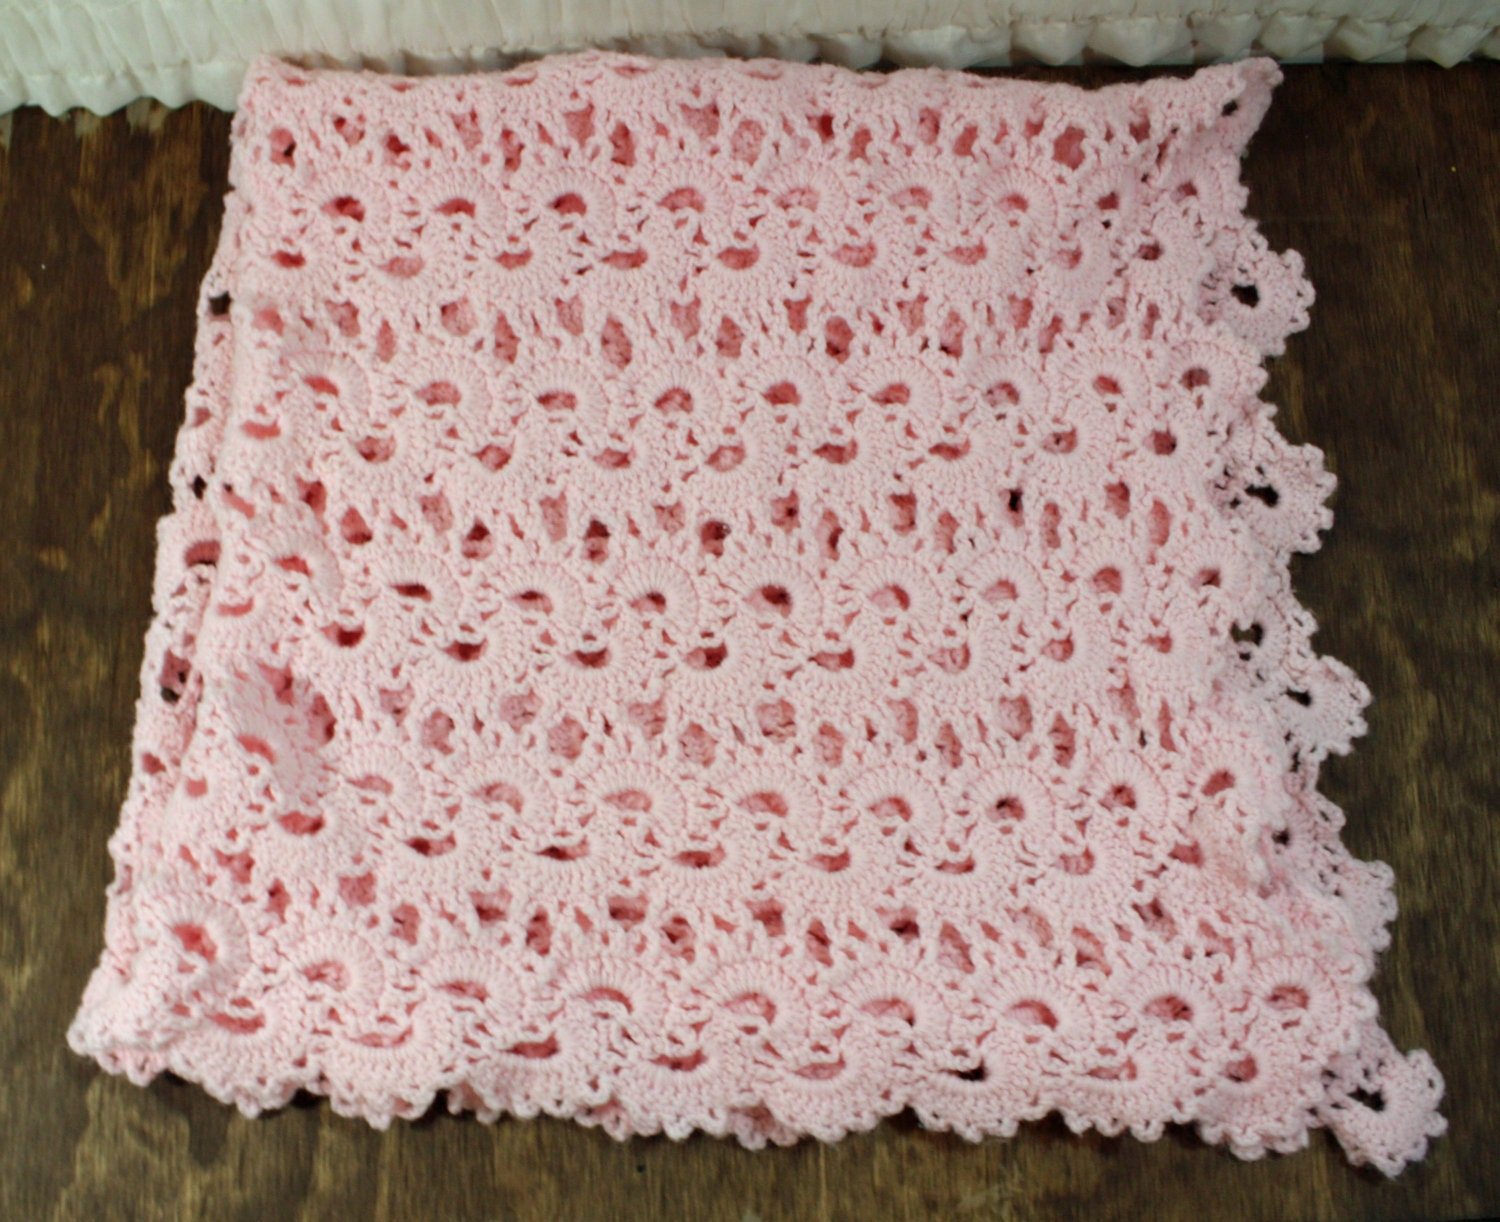 Crochet Quilts For Sale : SALE Pink Crocheted Baby Blanket Sam Wish